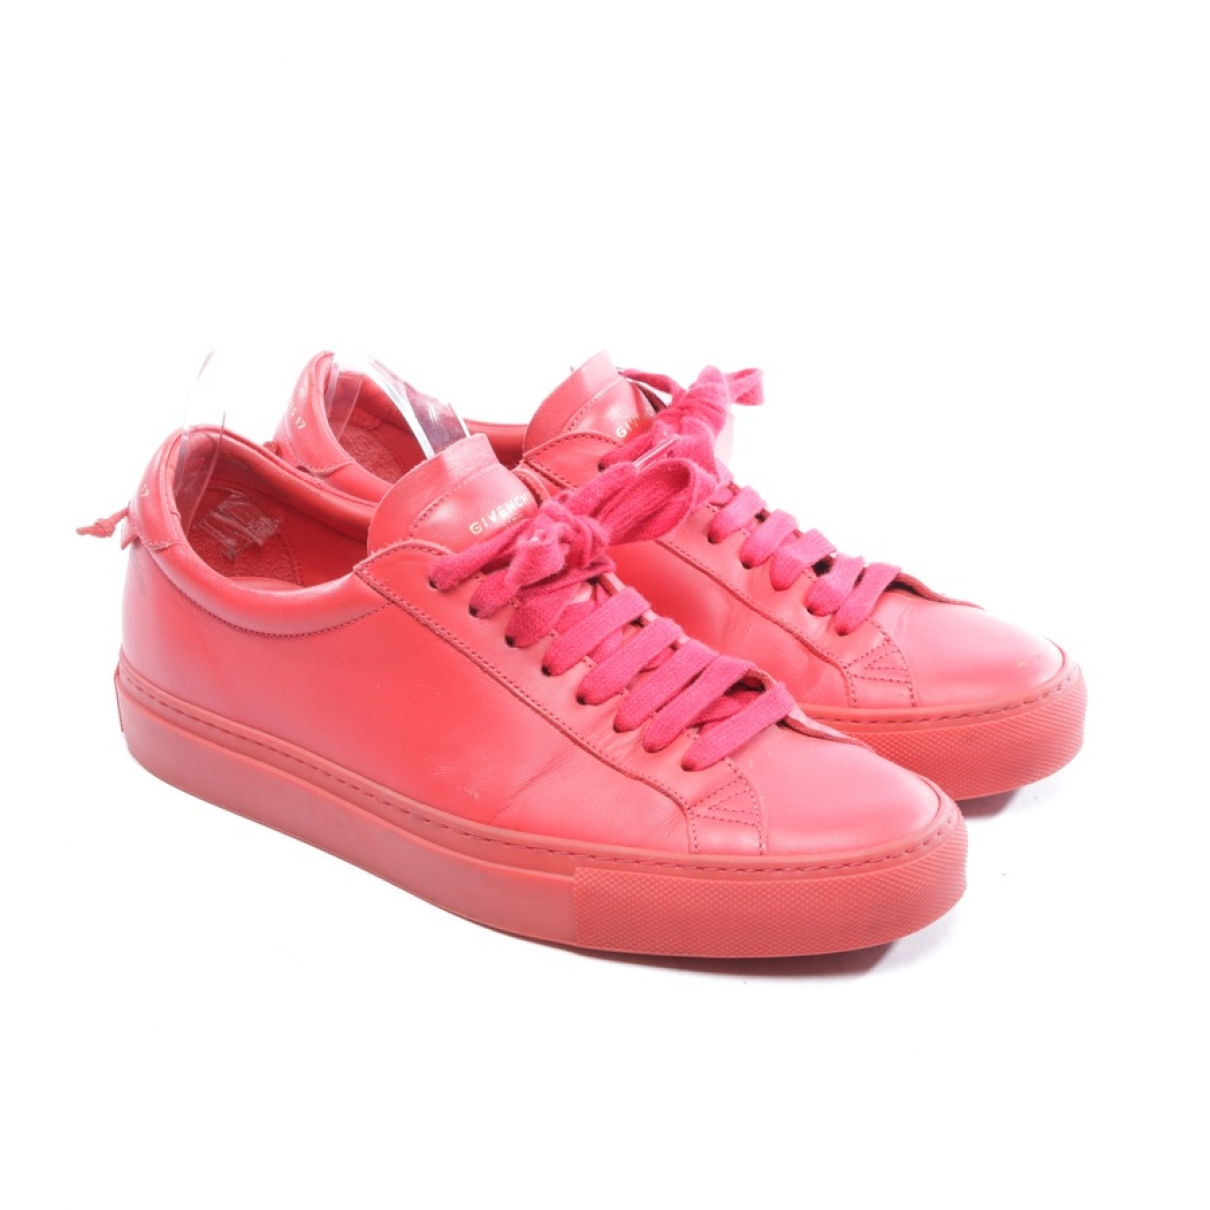 Givenchy \N Sneakers in  Rot Leder